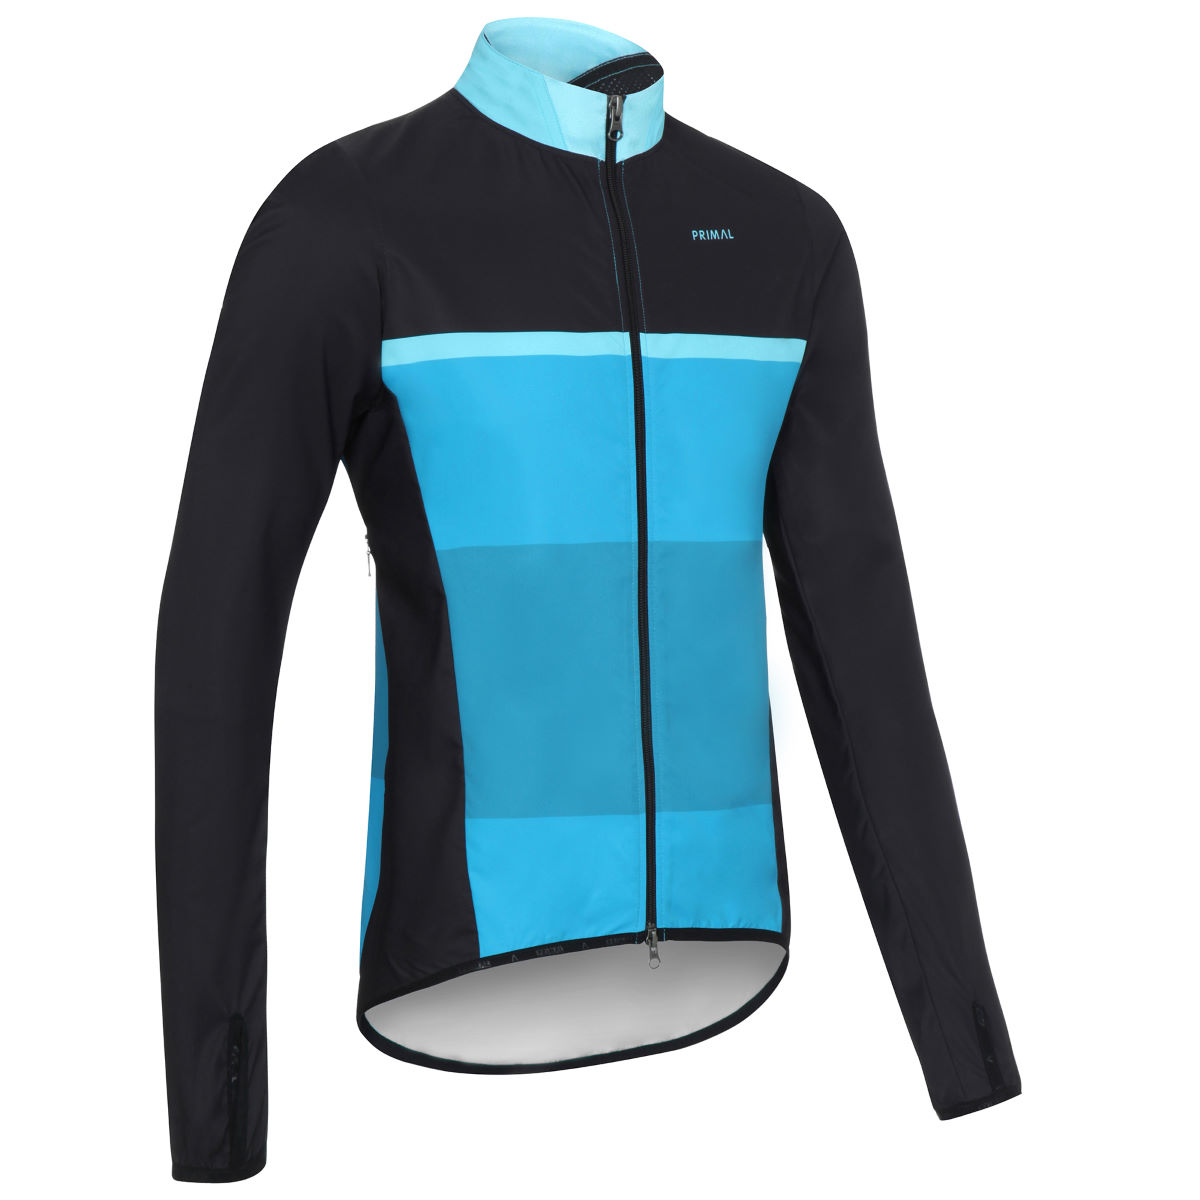 Veste Primal Blue Gene Wind - XL Blue Coupe-vents vélo